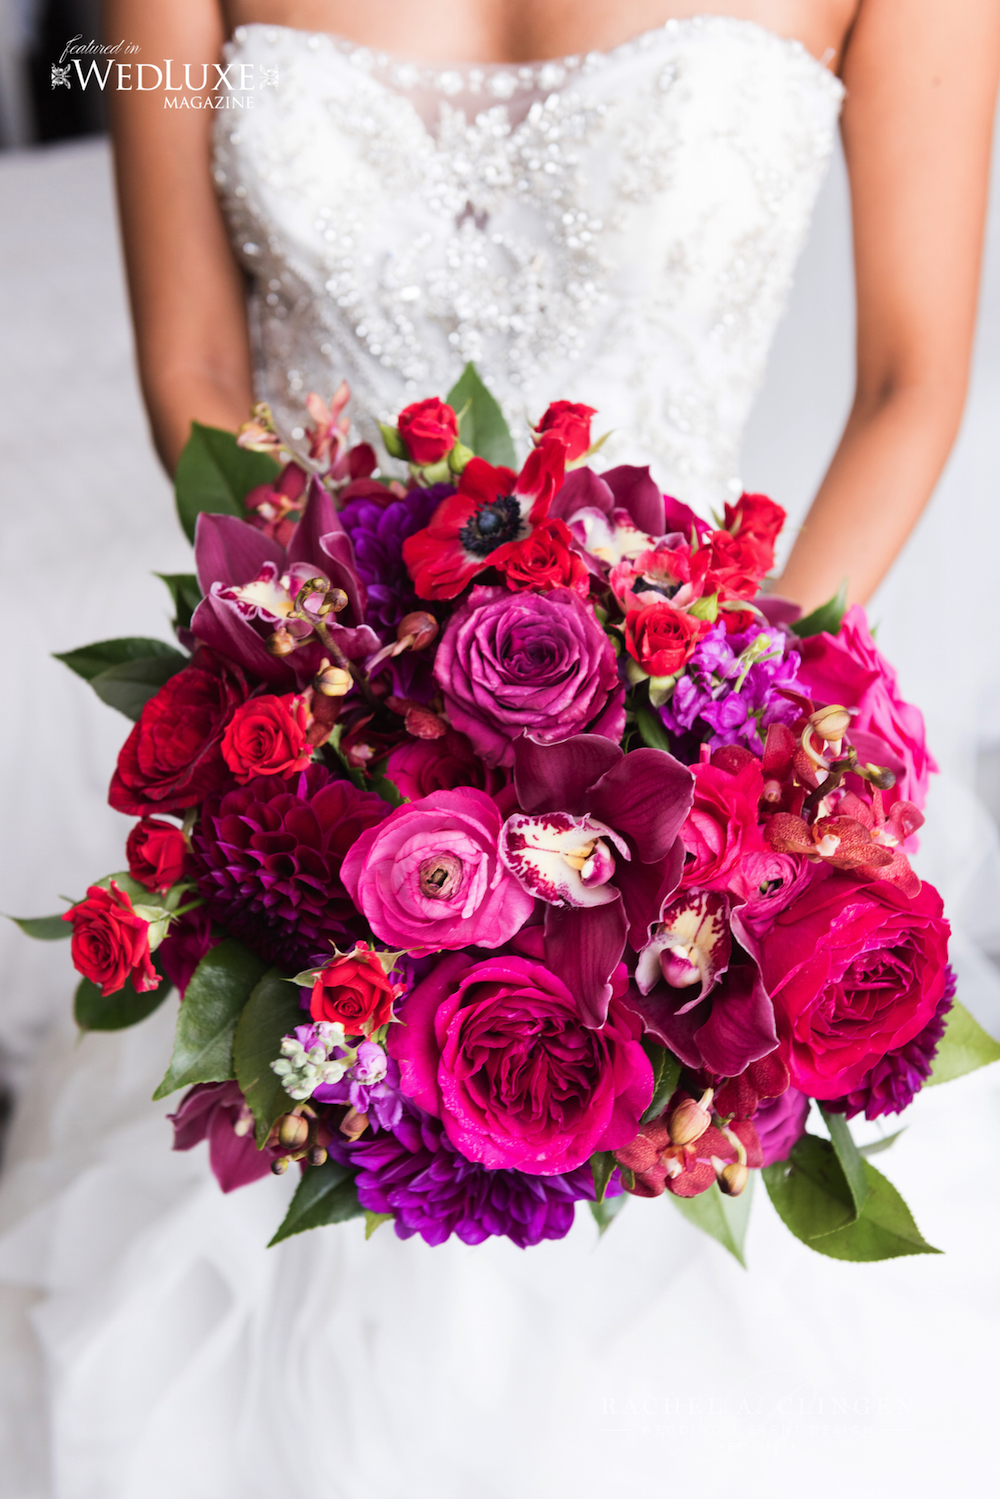 fushia-red-wedding-flowers-rachel-a-clingen